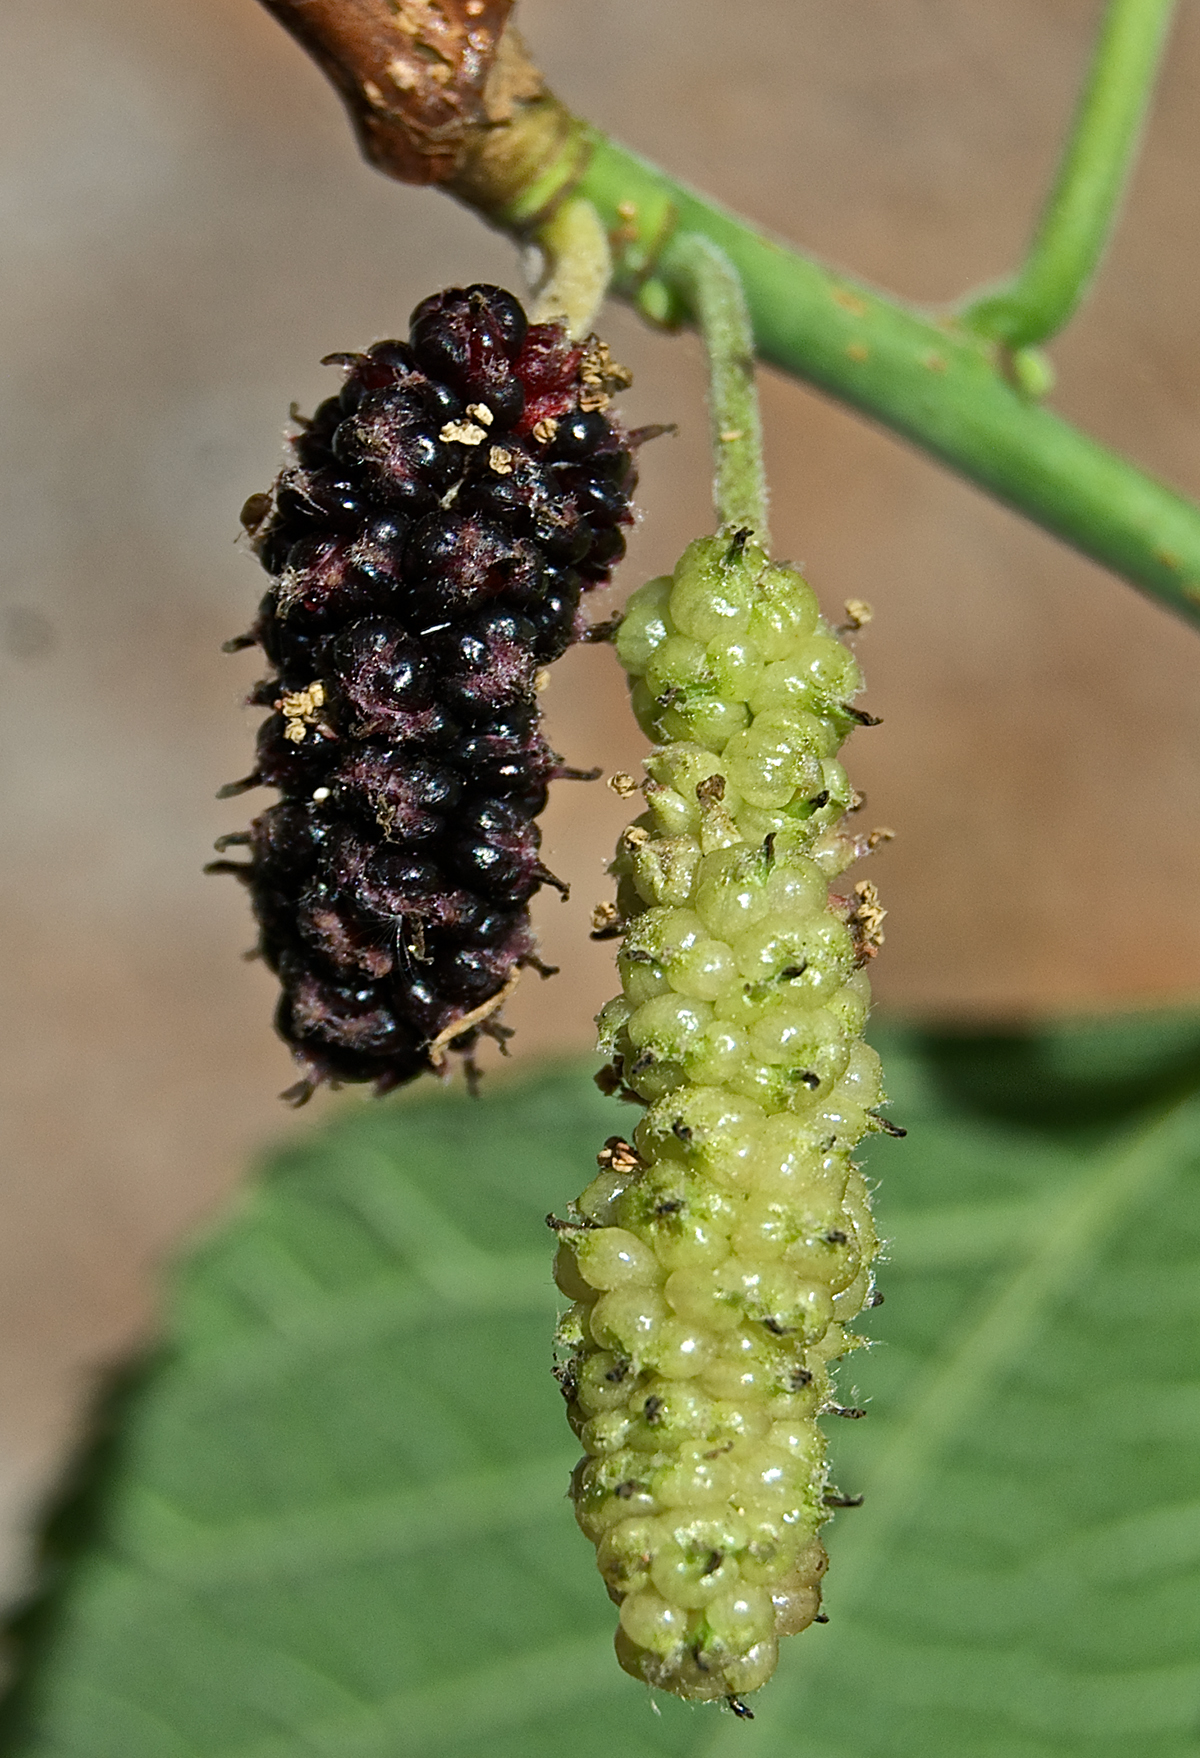 Red mulberry (Morus rubra) fruits.